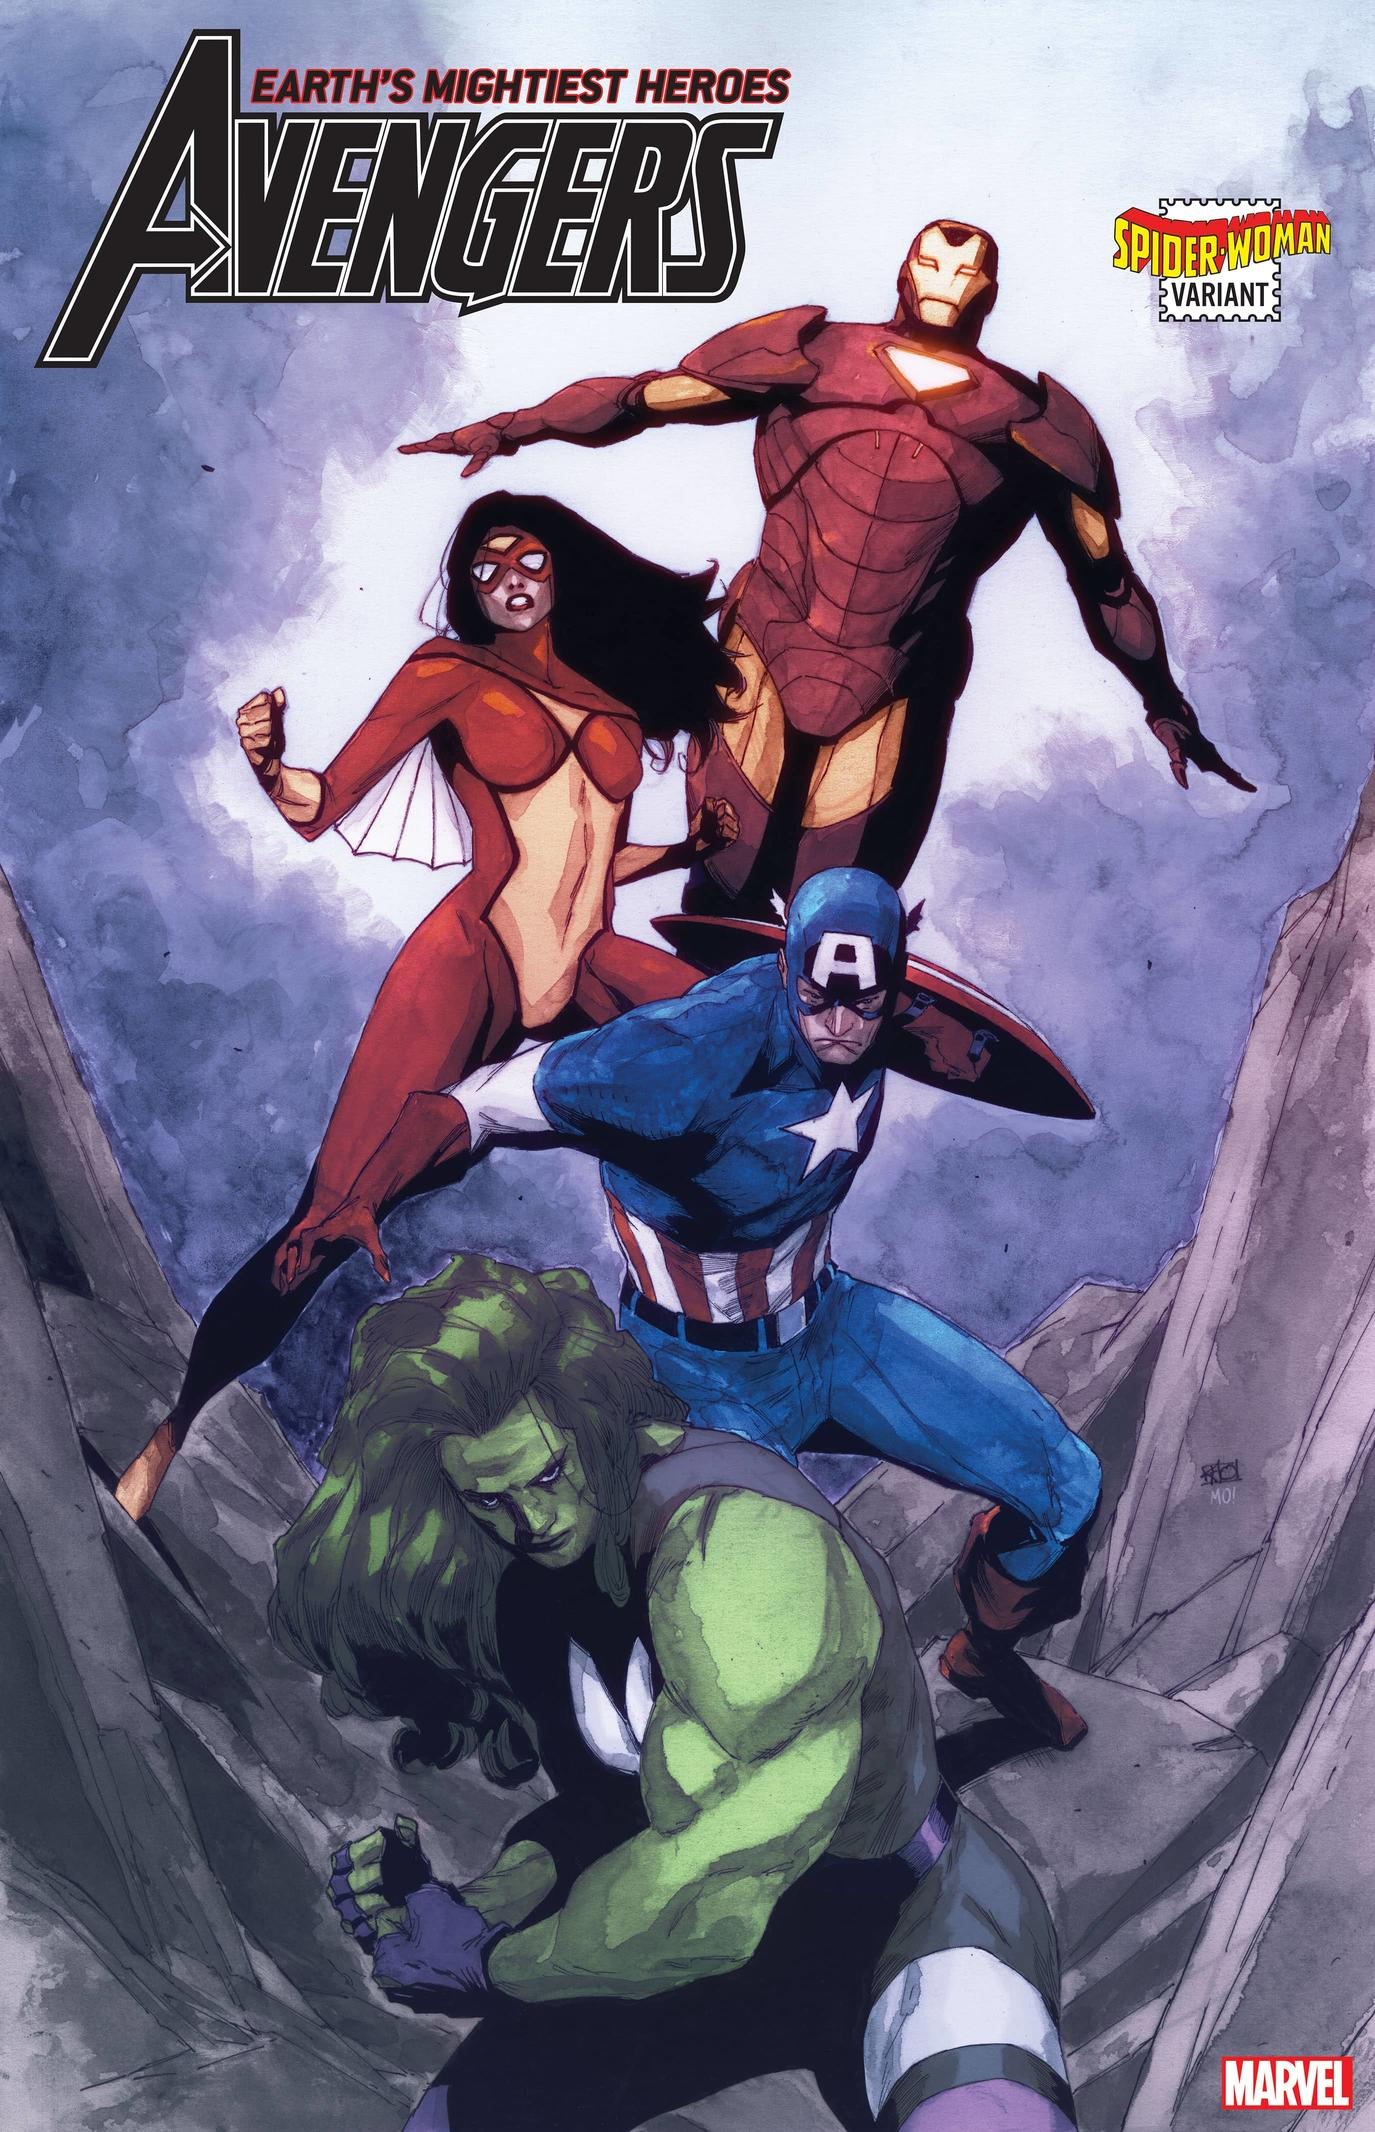 AVENGERS #33 SPIDER-WOMAN VARIANT by KHOI PHAM with colors by MORRY HOLLOWELL